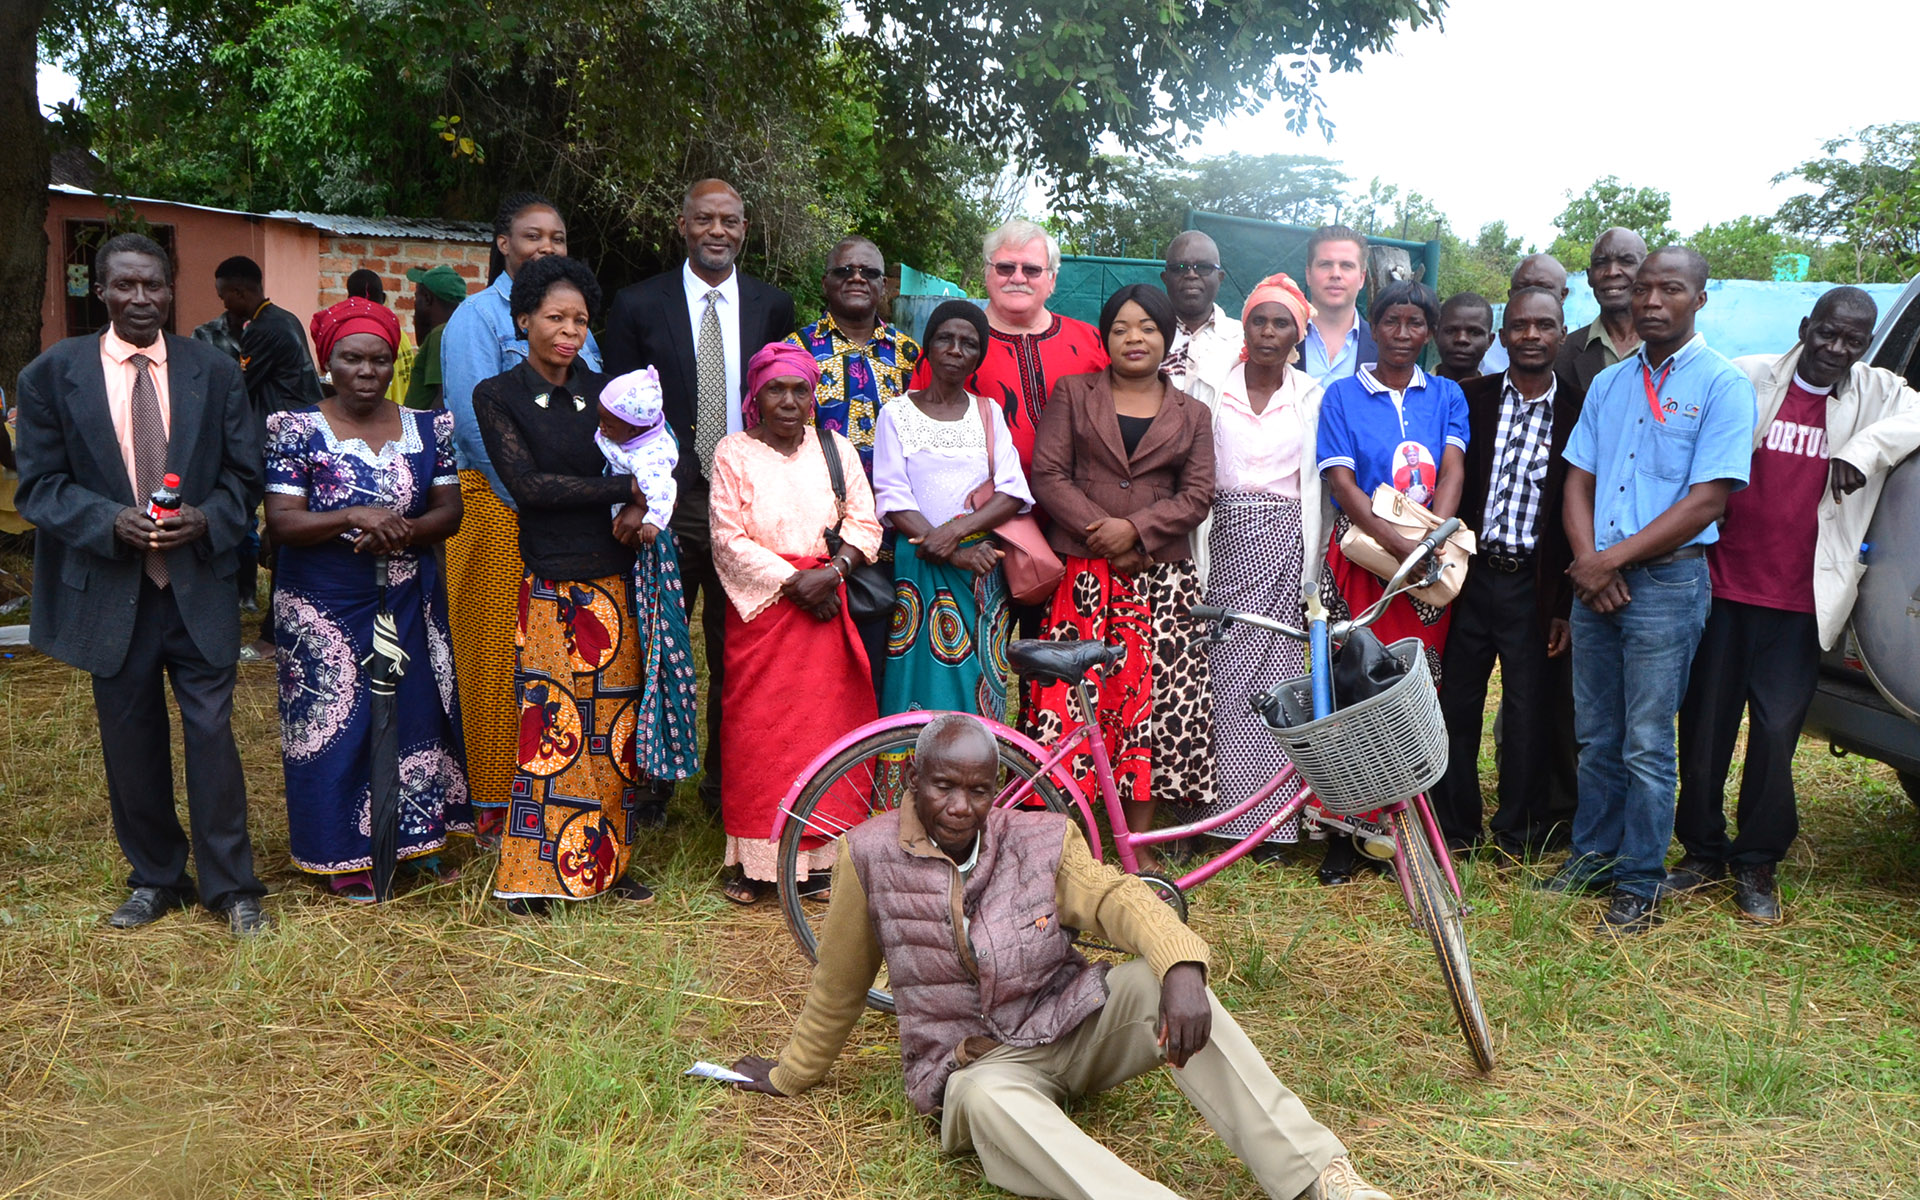 Upepo and Copperbelt Energy Company officials join local residents at a traditional Welcoming Ceremony at Chieftainess Malembeka's Palace Grounds.